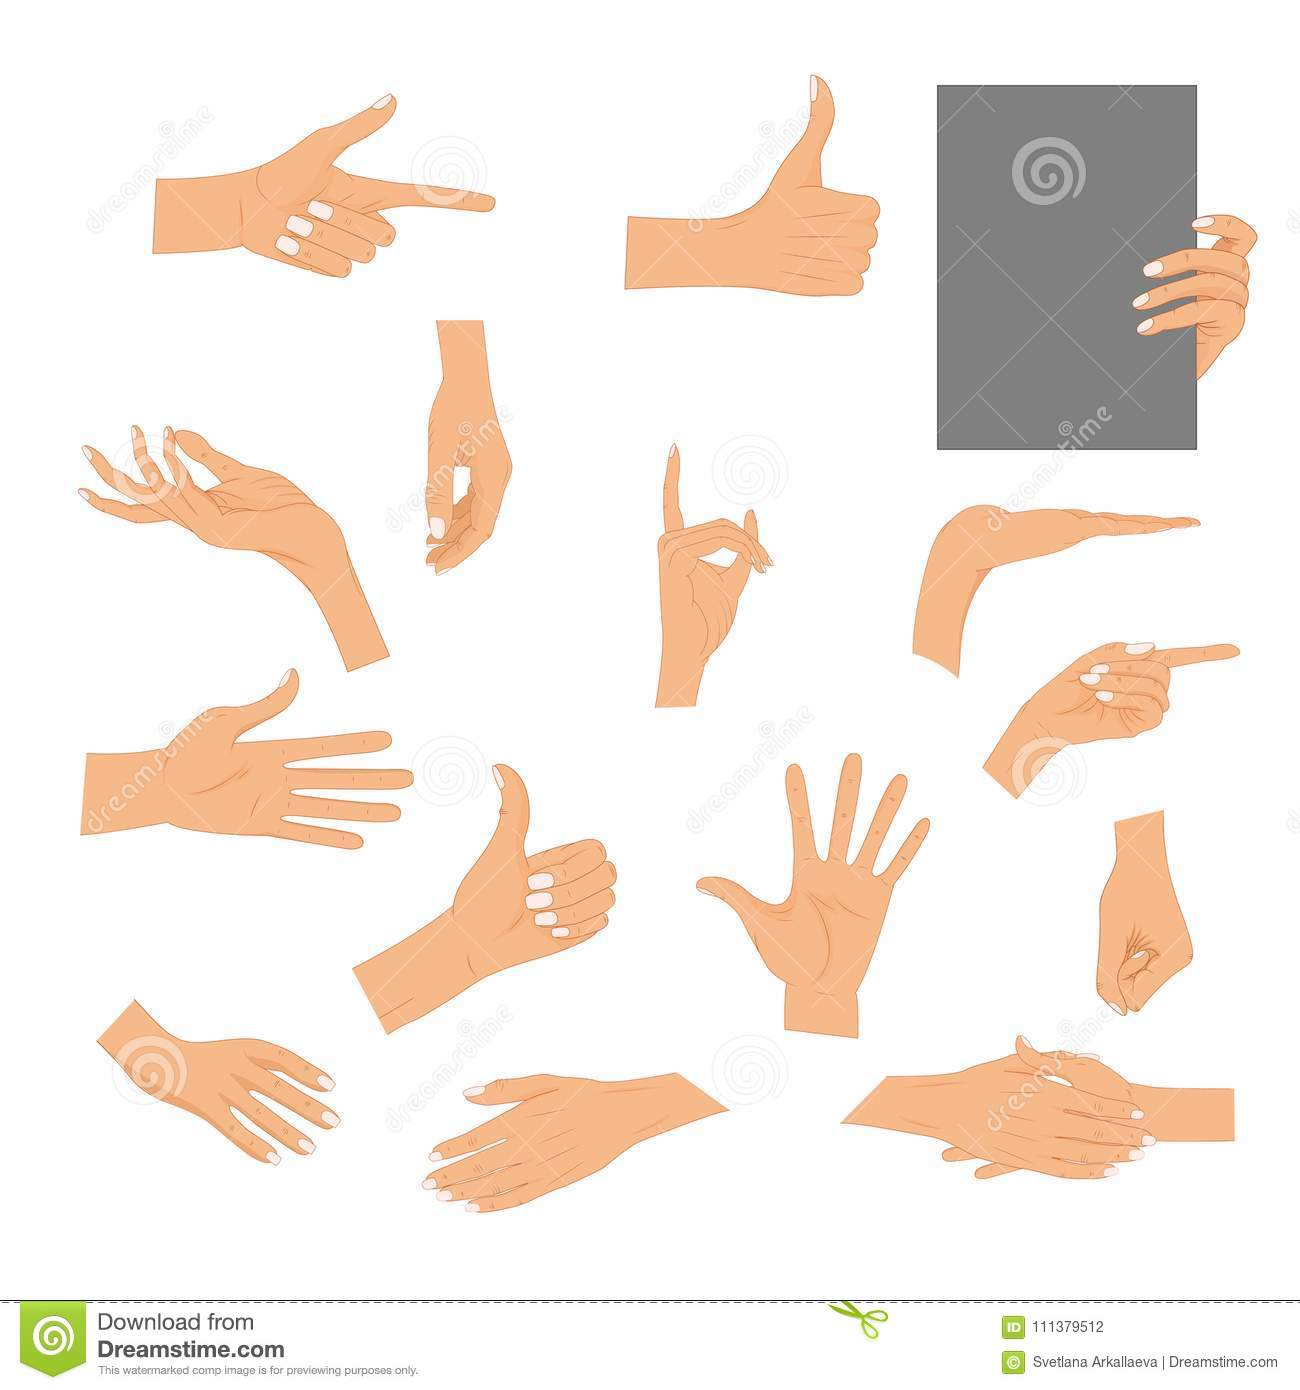 Set hands in different gestures isolated on white background. Colored hand gesture set with manicured nails and good